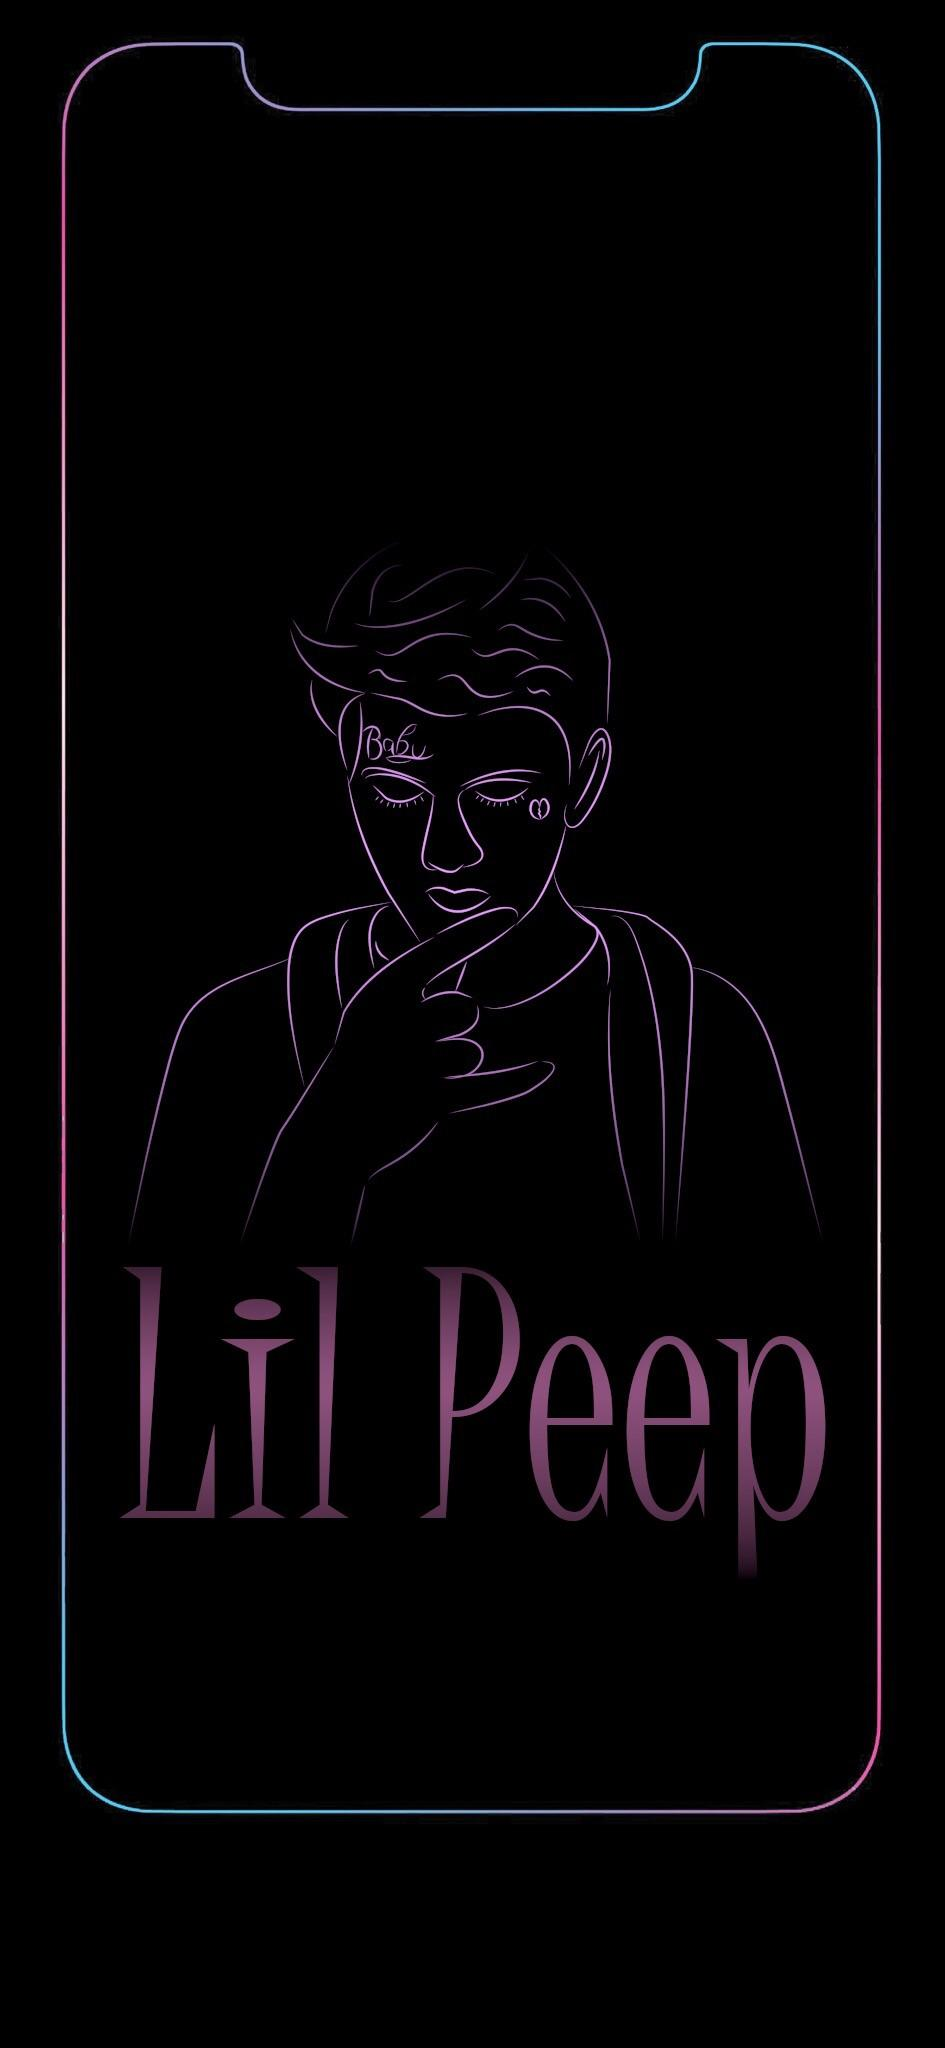 Lil Peep Iphone X 3017341 Hd Wallpaper Backgrounds Download